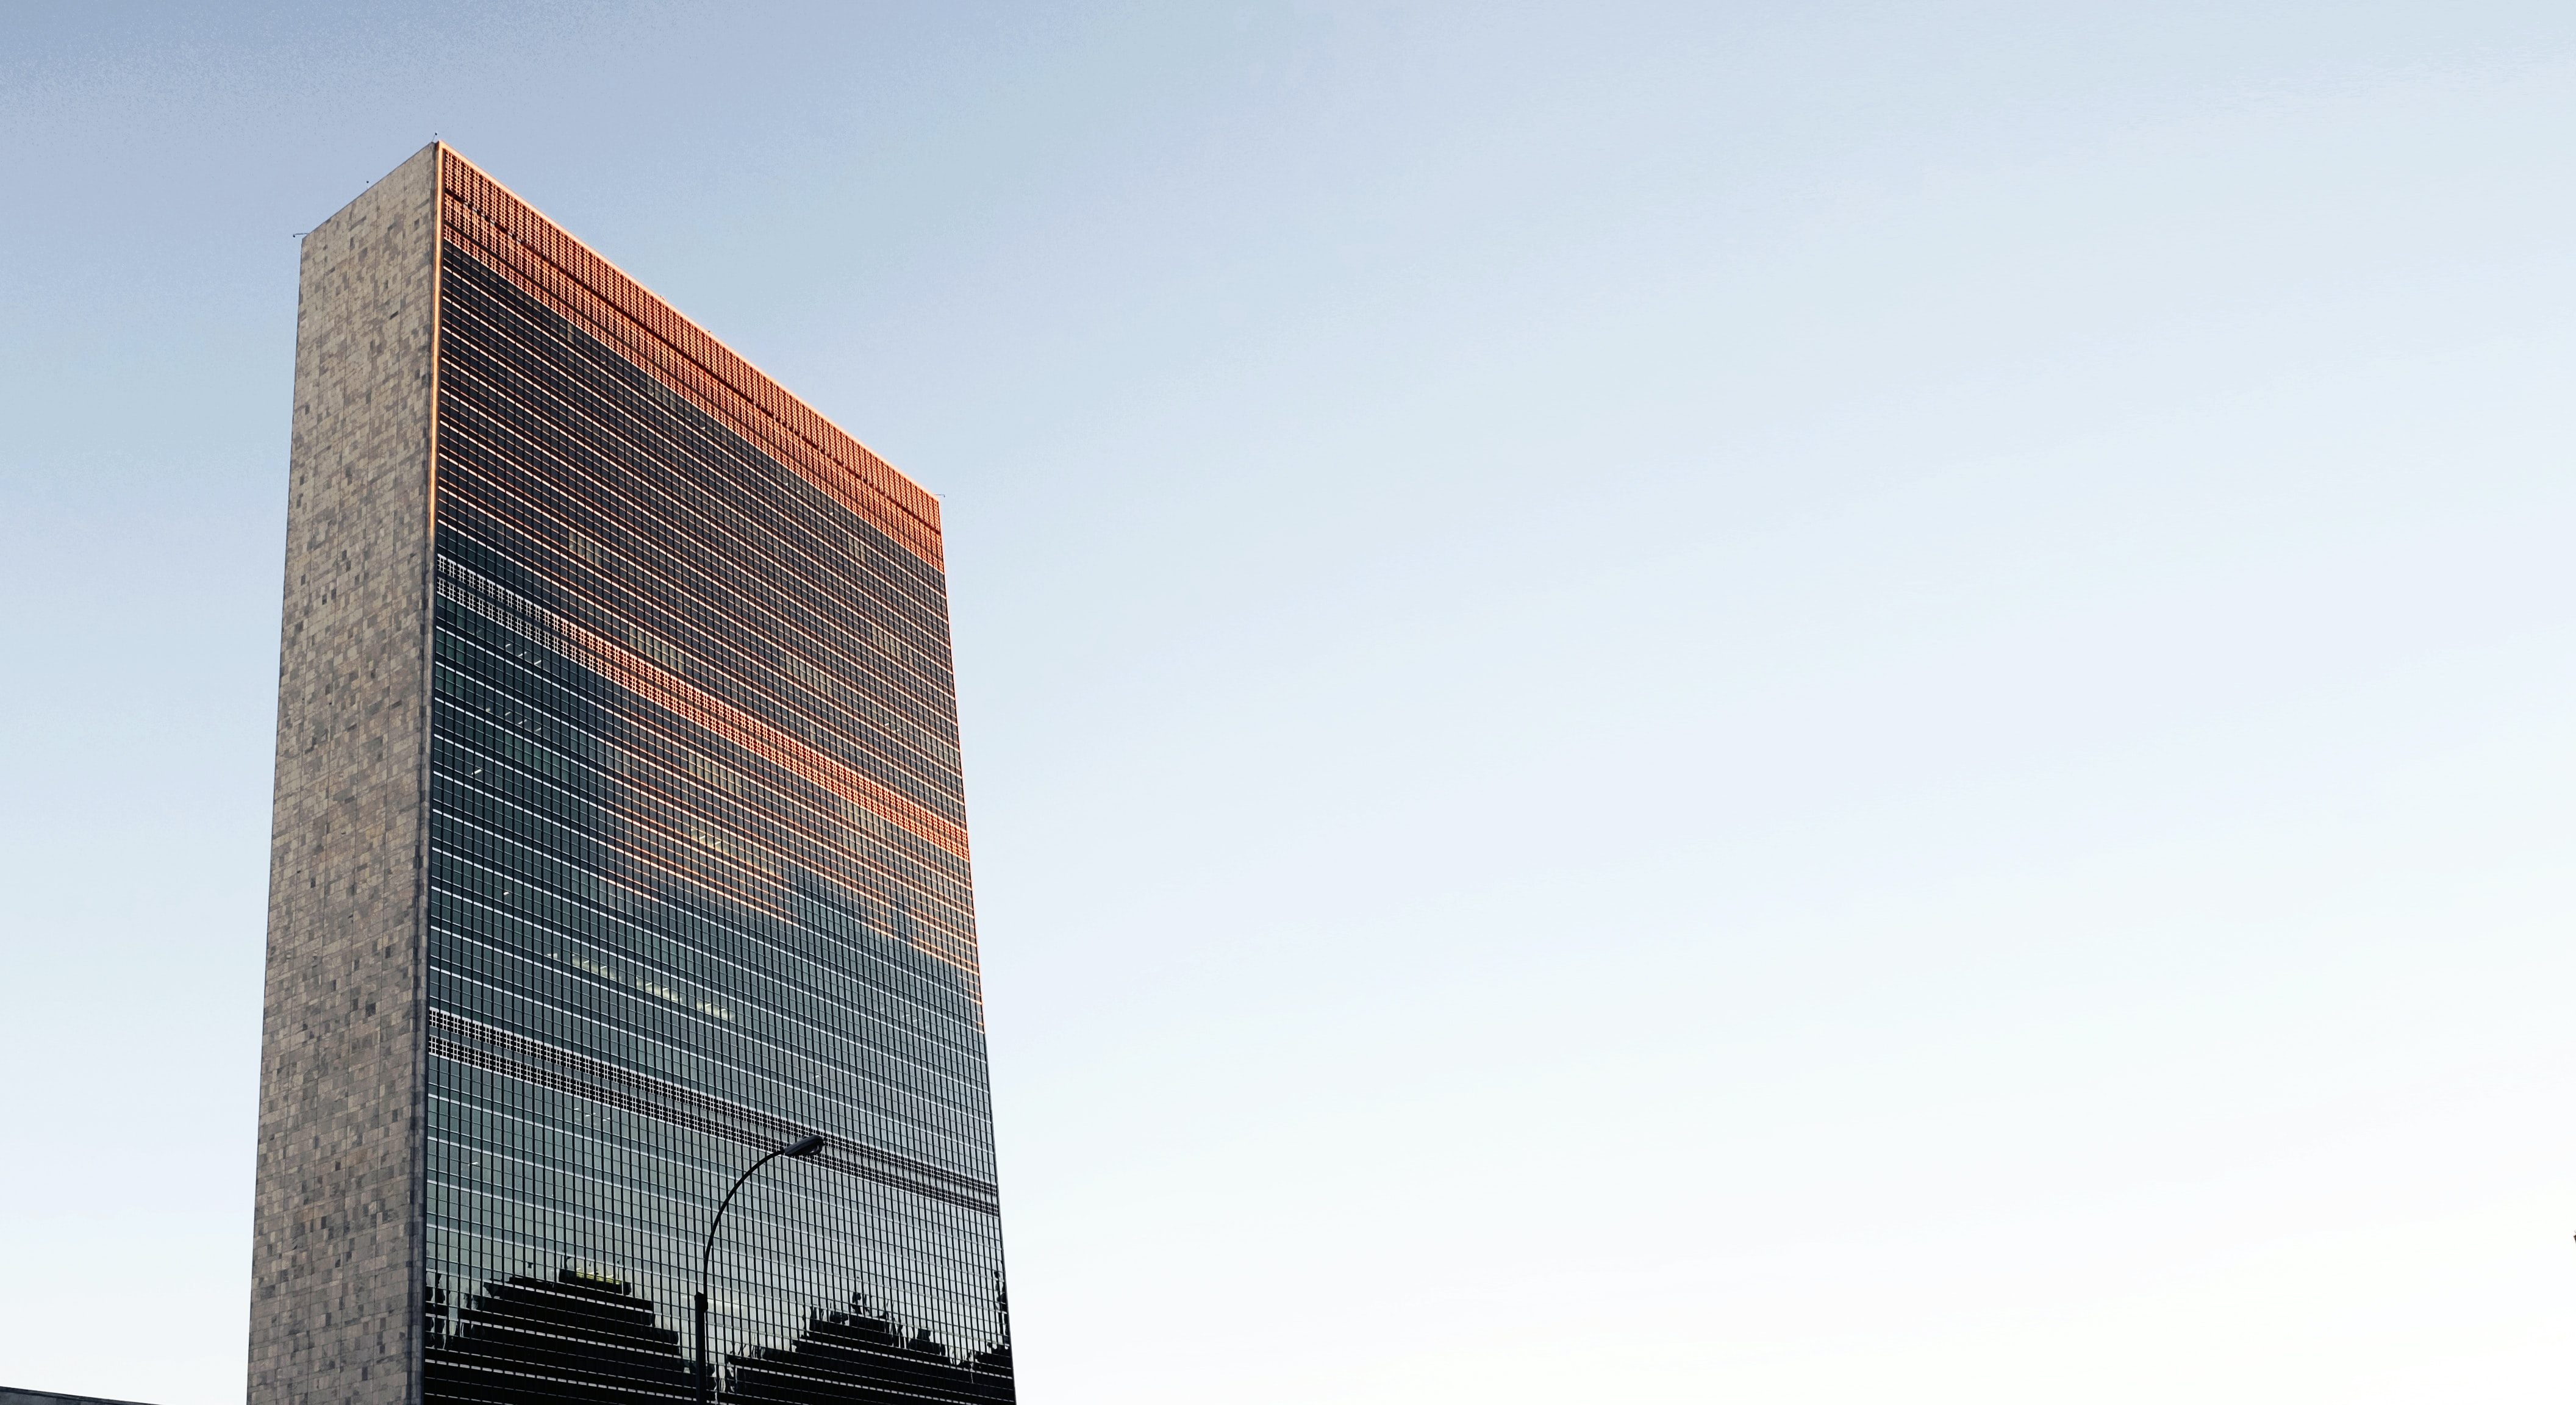 The facade of the United Nations Headquarters in New York City